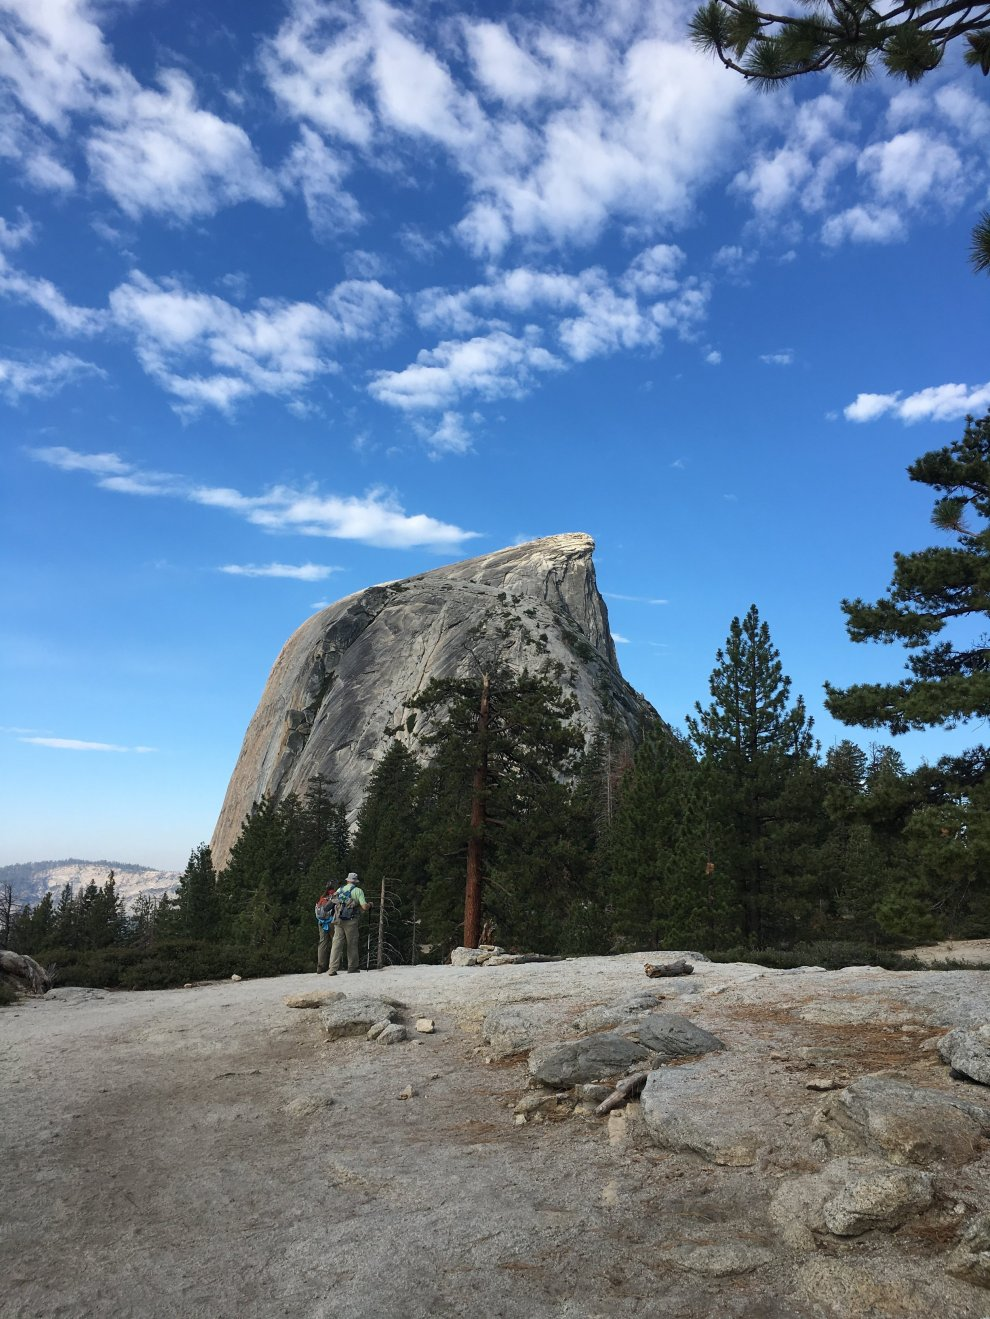 Sub Dome hiding part of Half Dome. We were at the tip of the second peak!